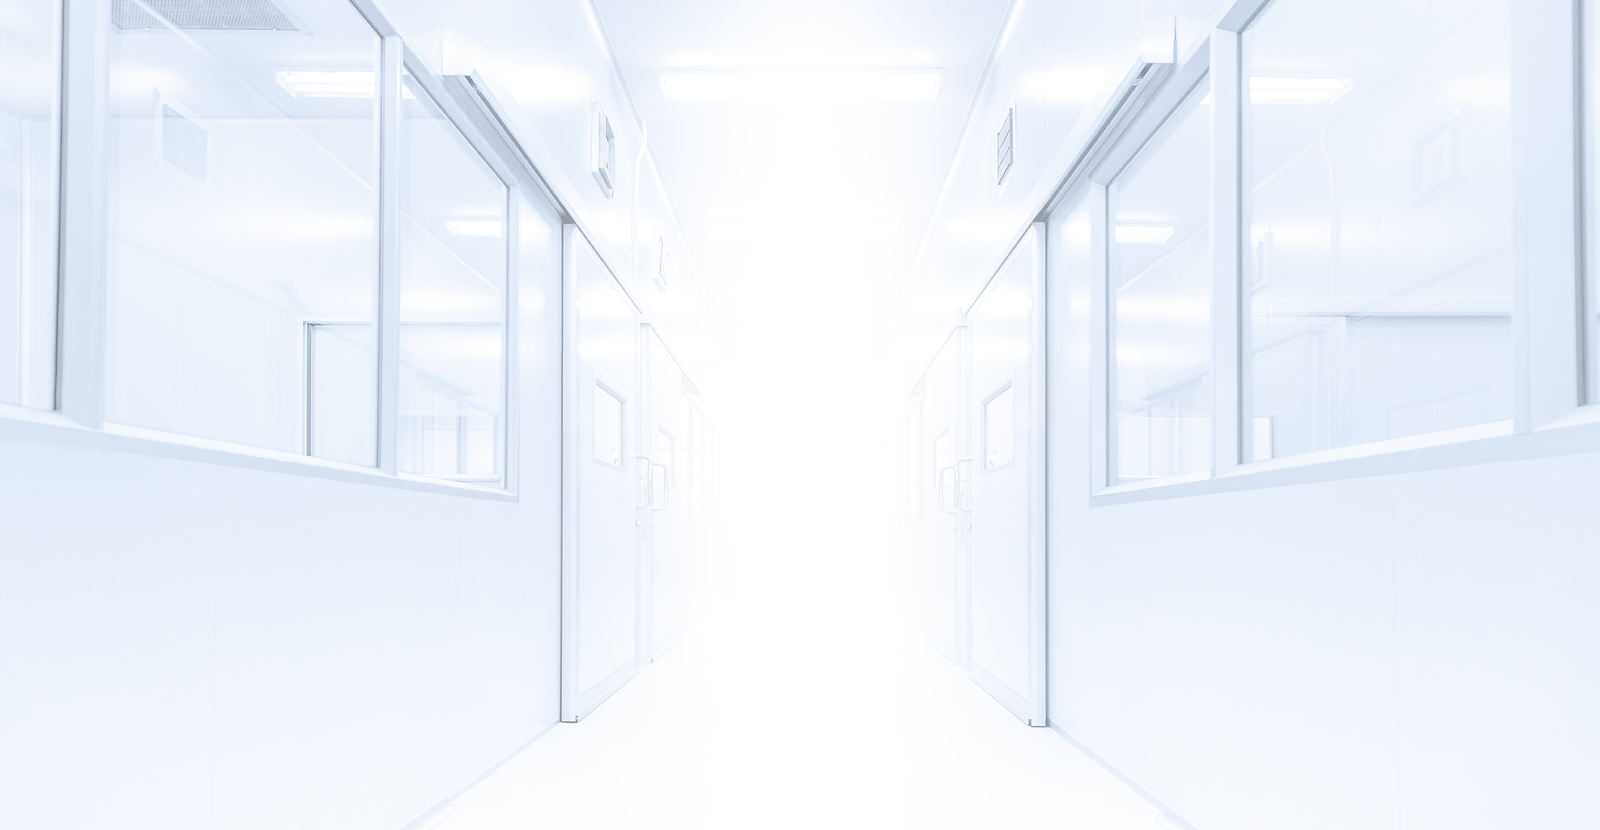 Critical Environments - Cleanroom 002 - 50 Opacity - Edited - 1600x830.png